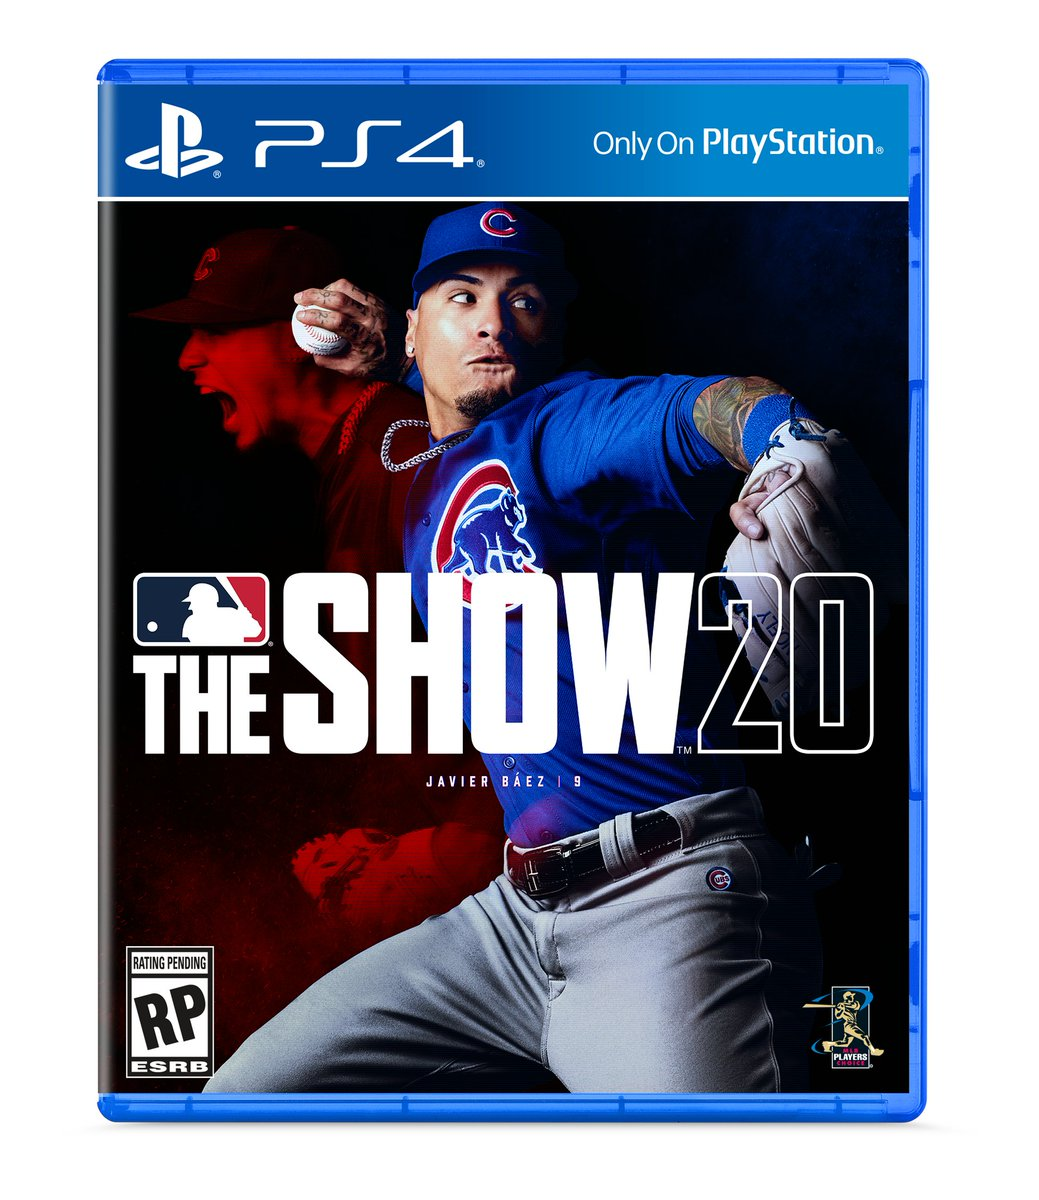 A dream of mine came true today. Could not be more excited to be on the cover of @mlbtheshow… and it's 🔥🔥! play.st/TheShow20 #mlbtheshow #PSPartner #ElMago